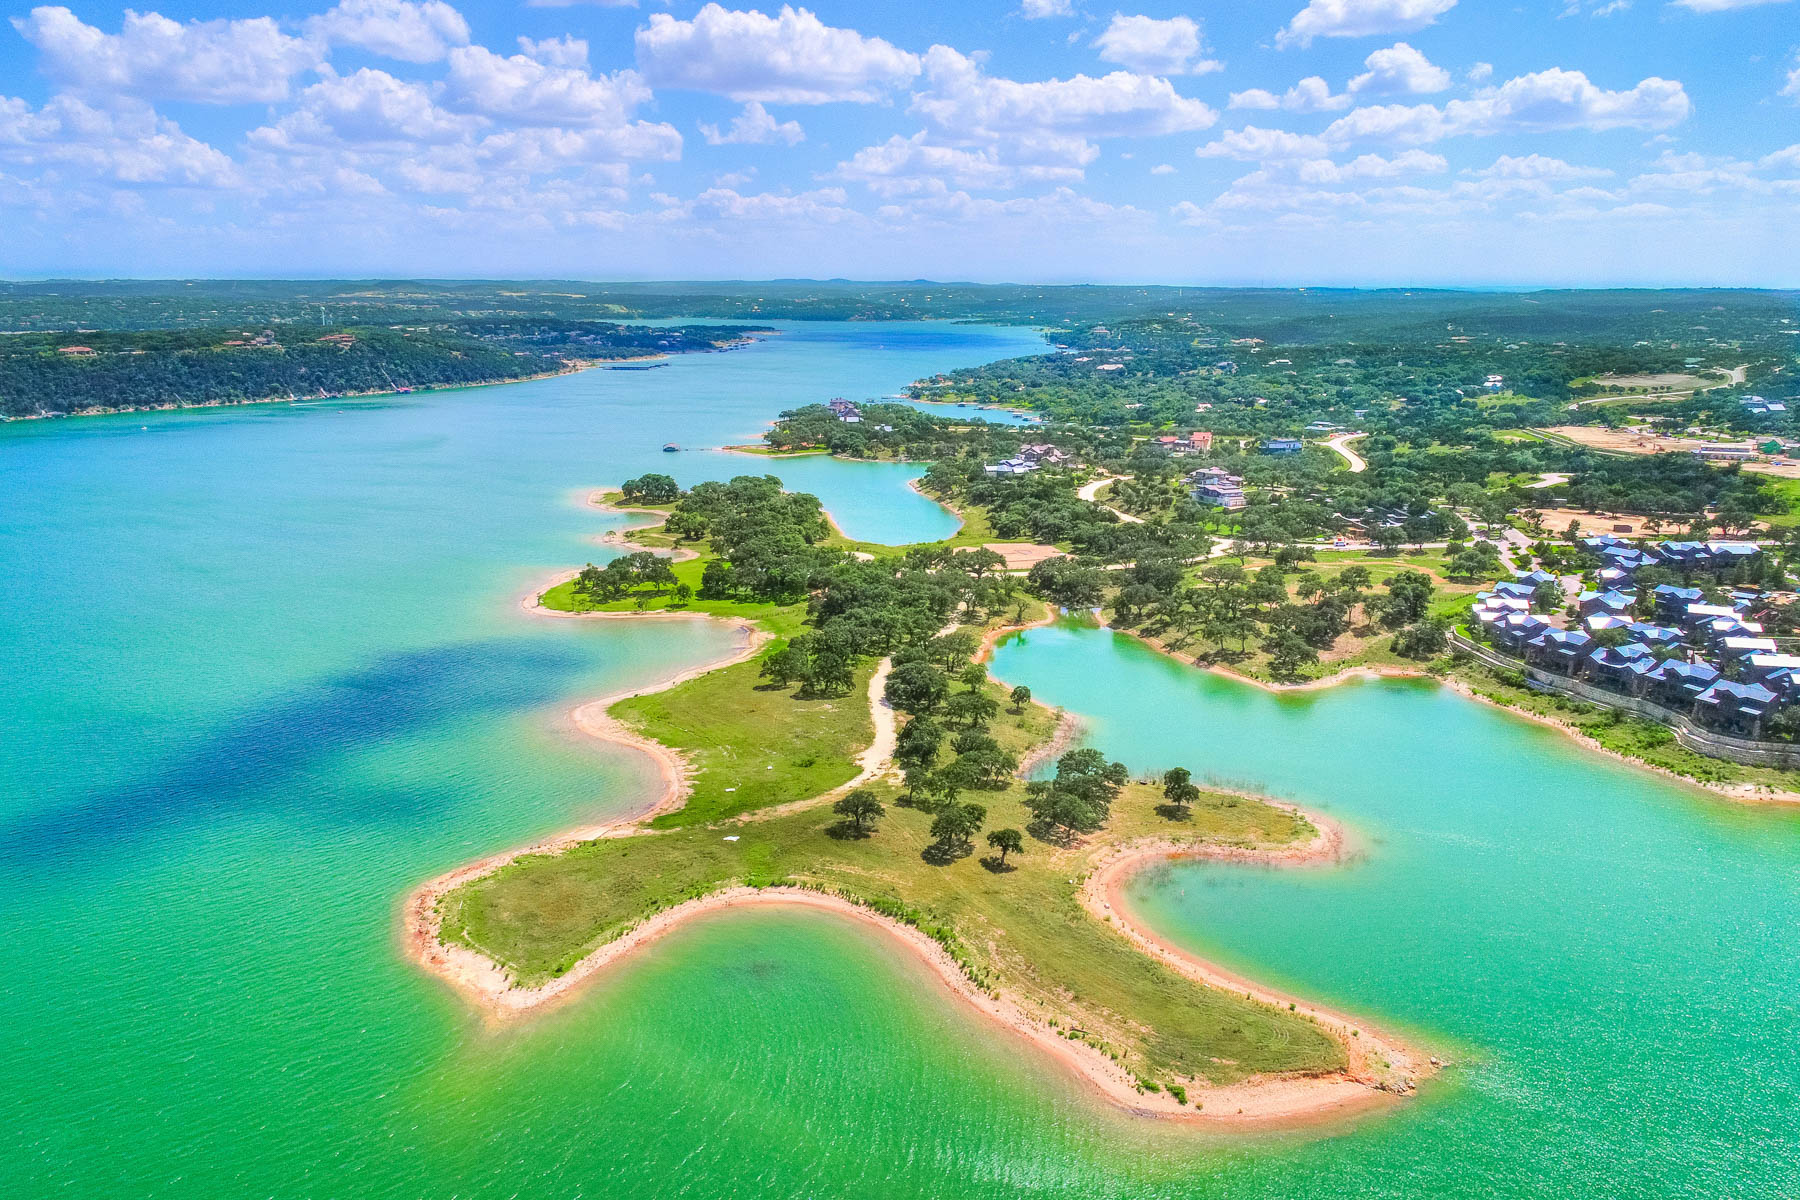 Terreno por un Venta en The Reserve on Lake Travis: 12.24 Waterfront Acres 2200 Cypress Club Pointe Spicewood, Texas 78669 Estados Unidos